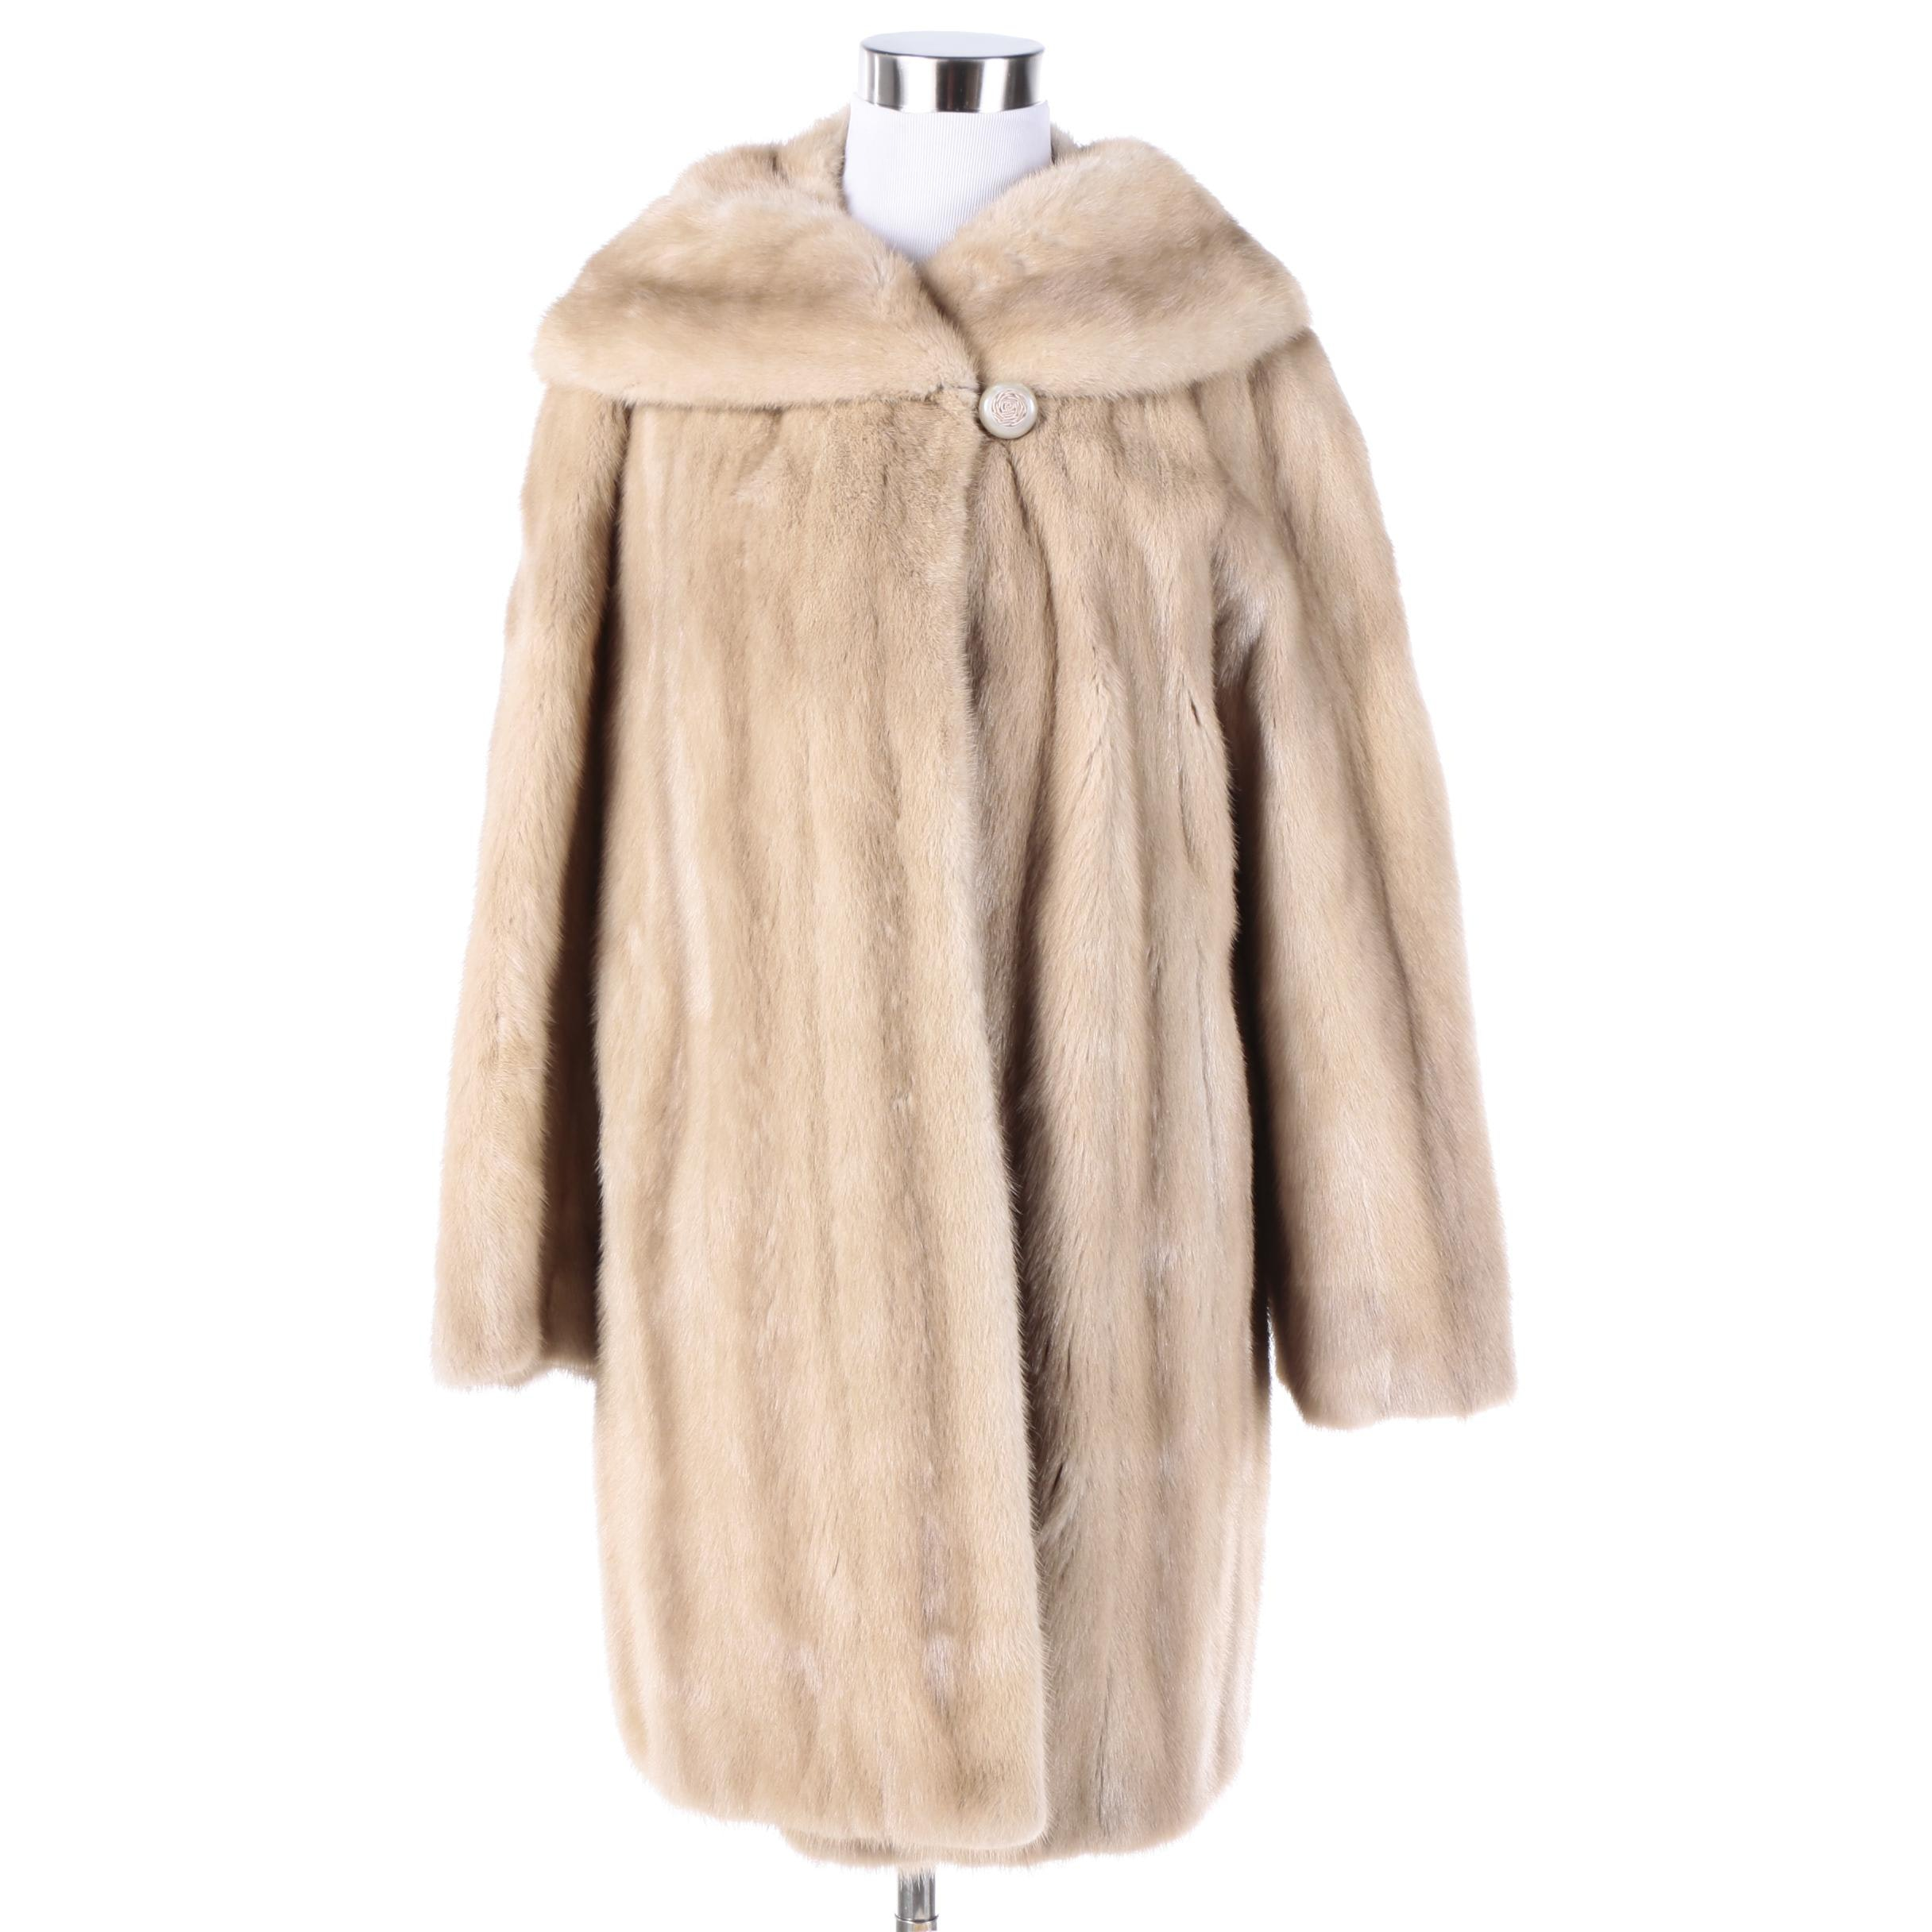 Vintage Schumacher Blonde Mink Fur Coat